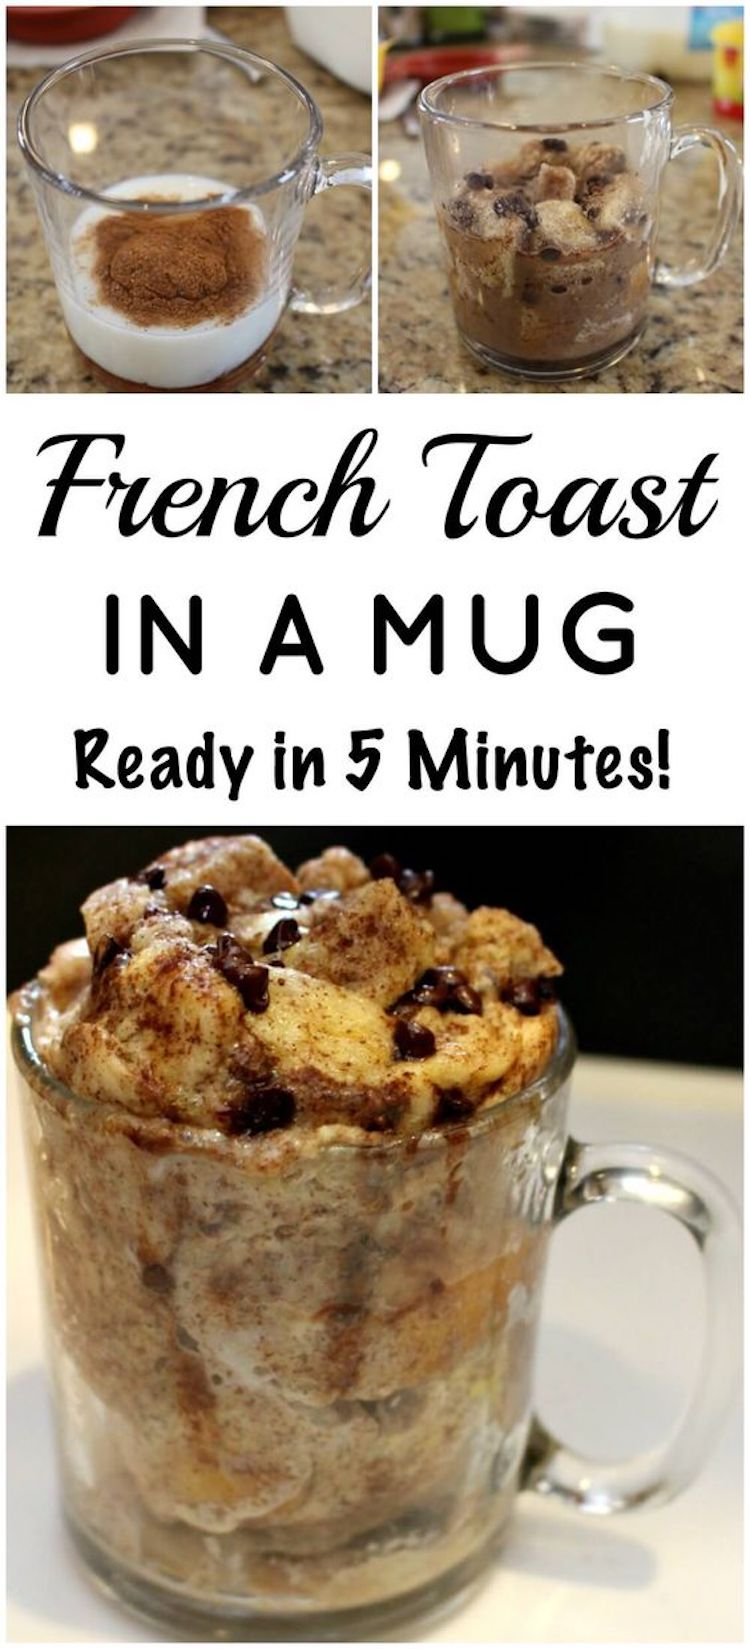 French Toast Mug Recipe: Ready In 5 Minutes